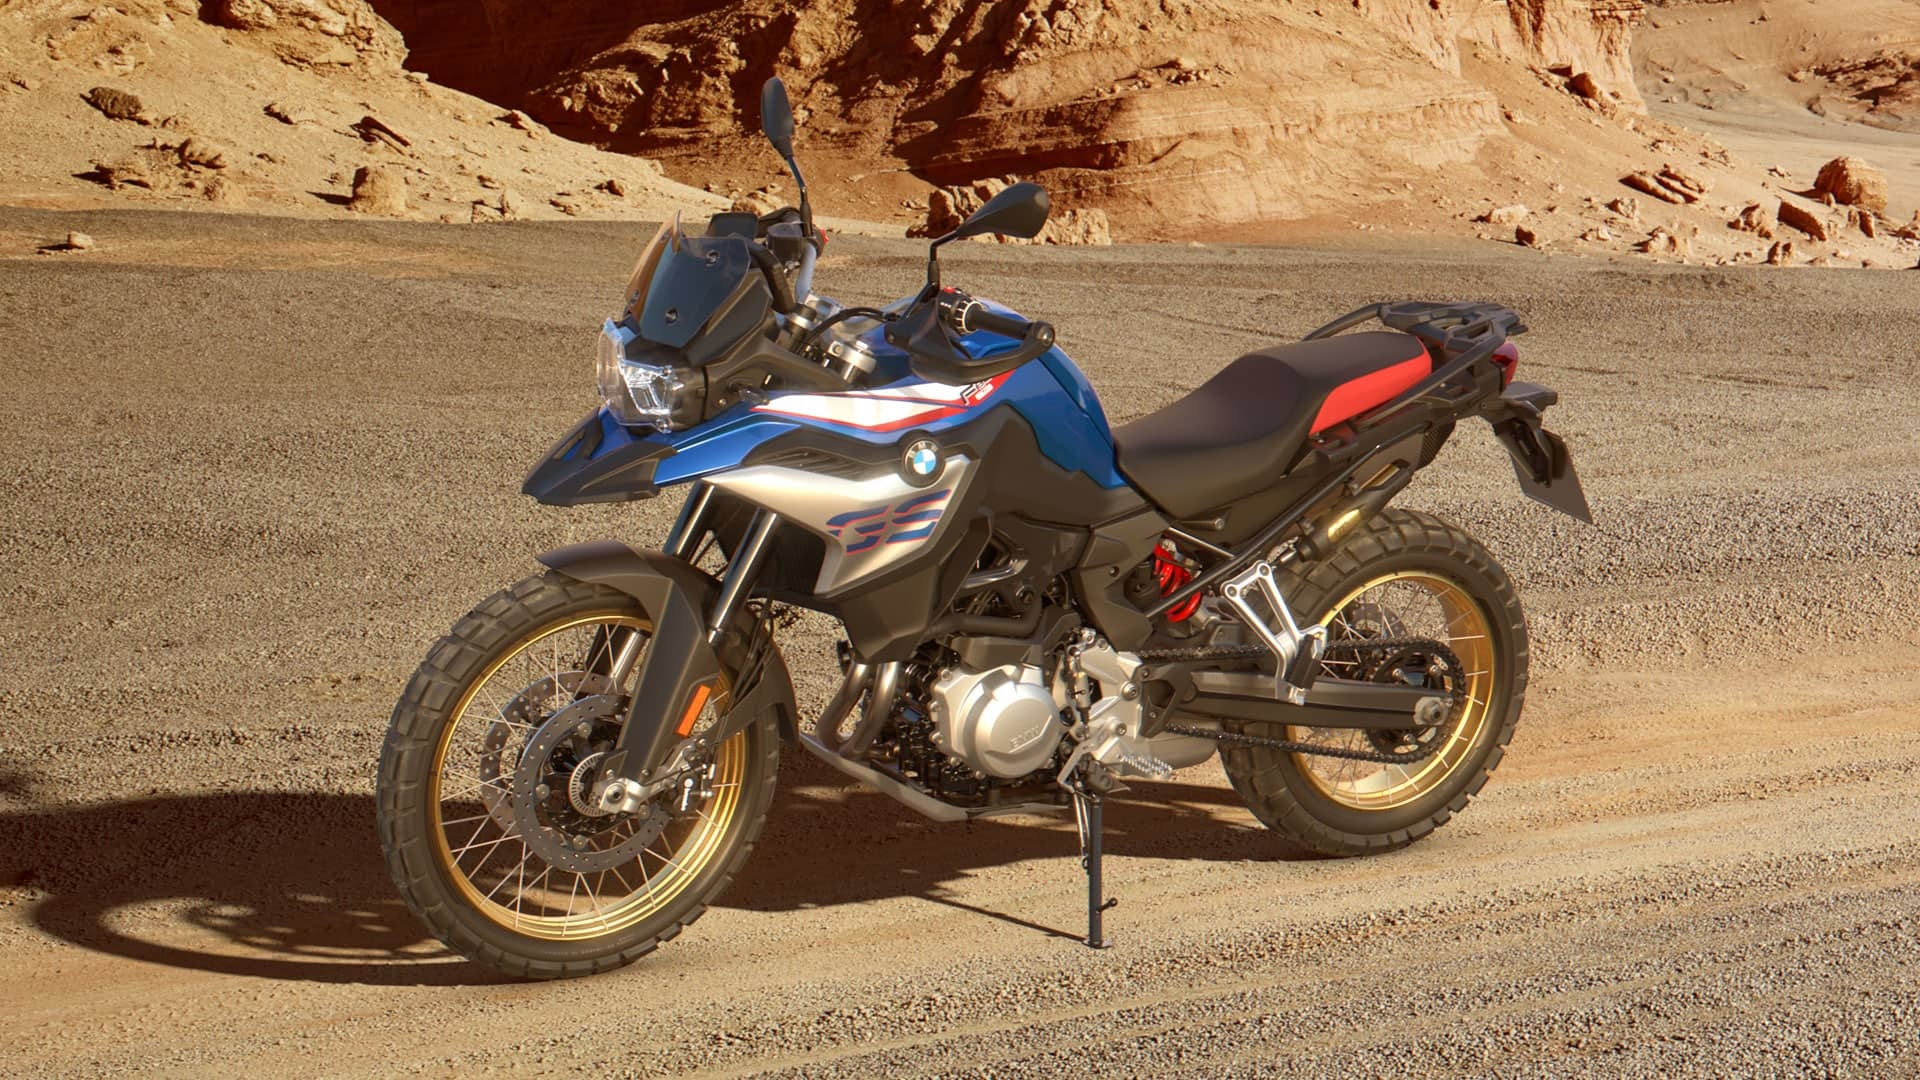 2021 BMW F 850 GS Parked On A Desert Trail